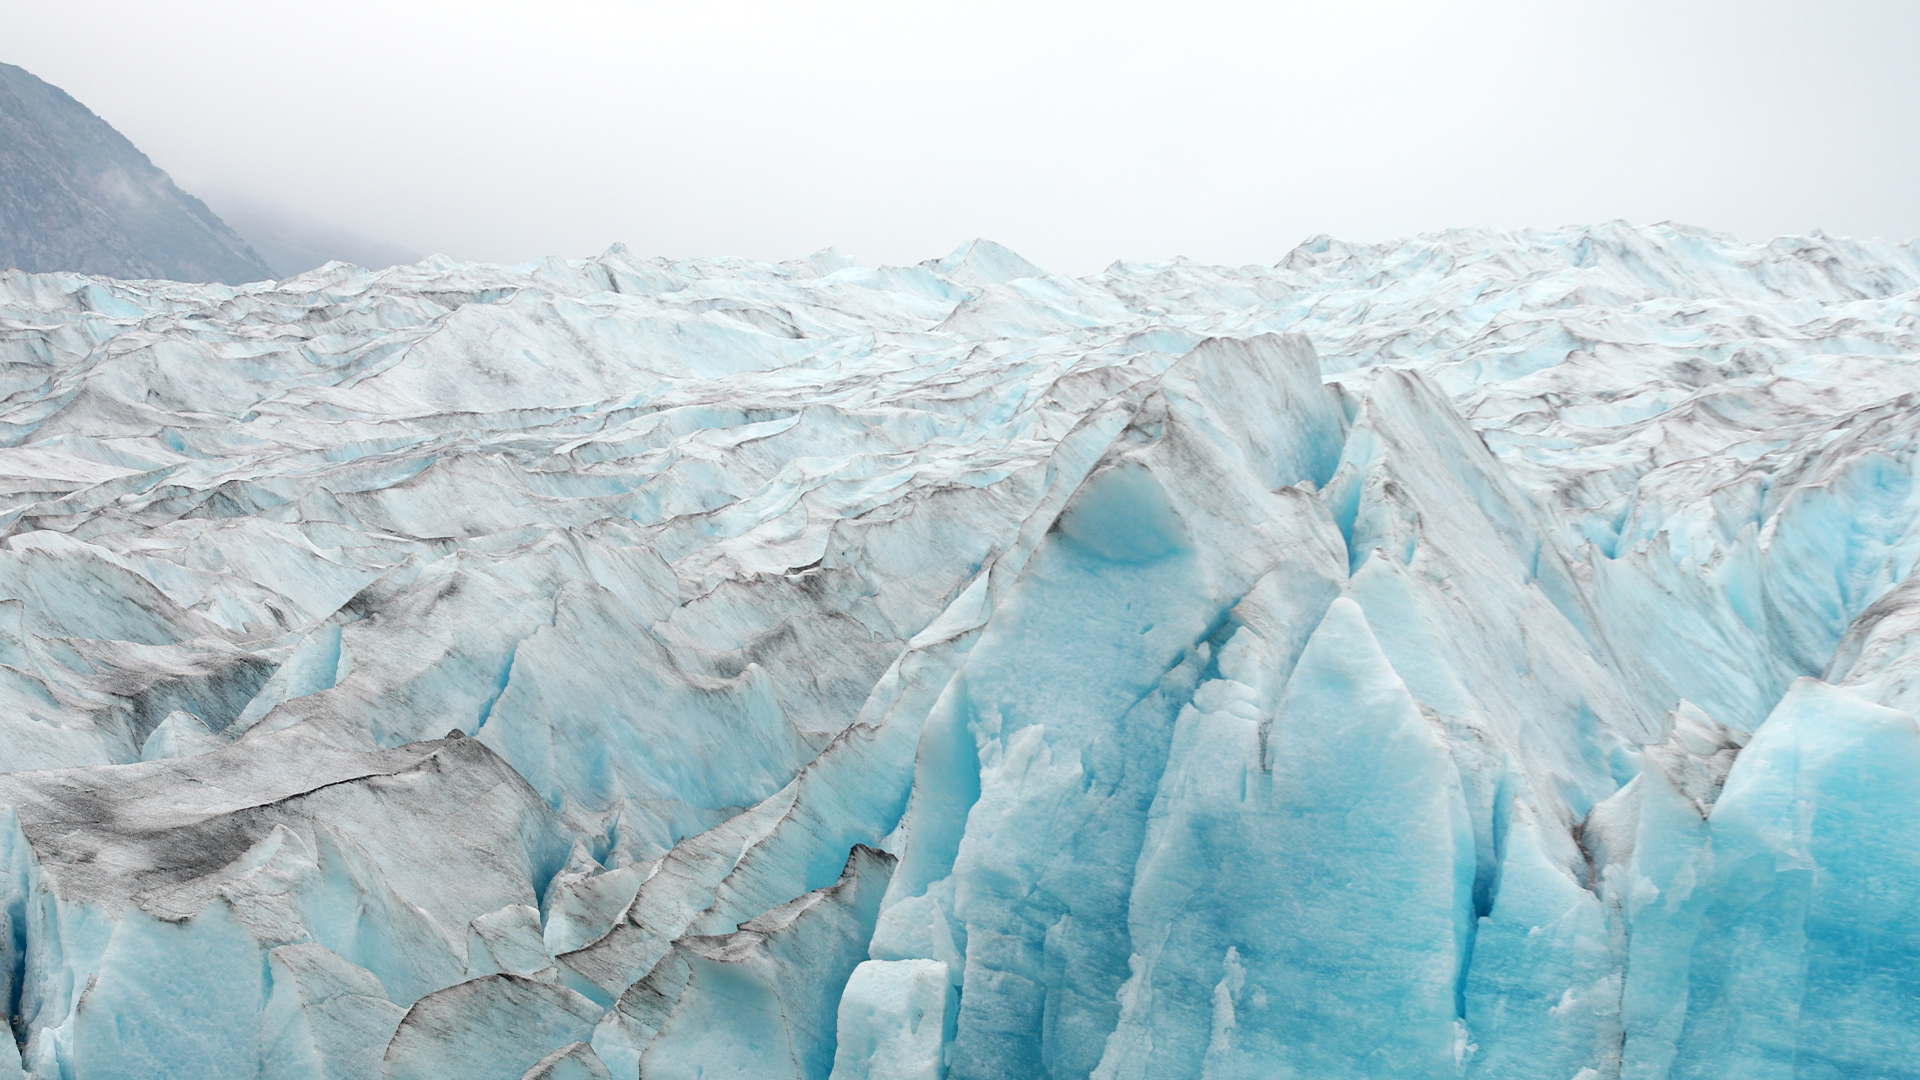 The face of Spencer Glacier has been receding almost a hundred feet each year.  The surface of the ice loses 12 inches of height every day.